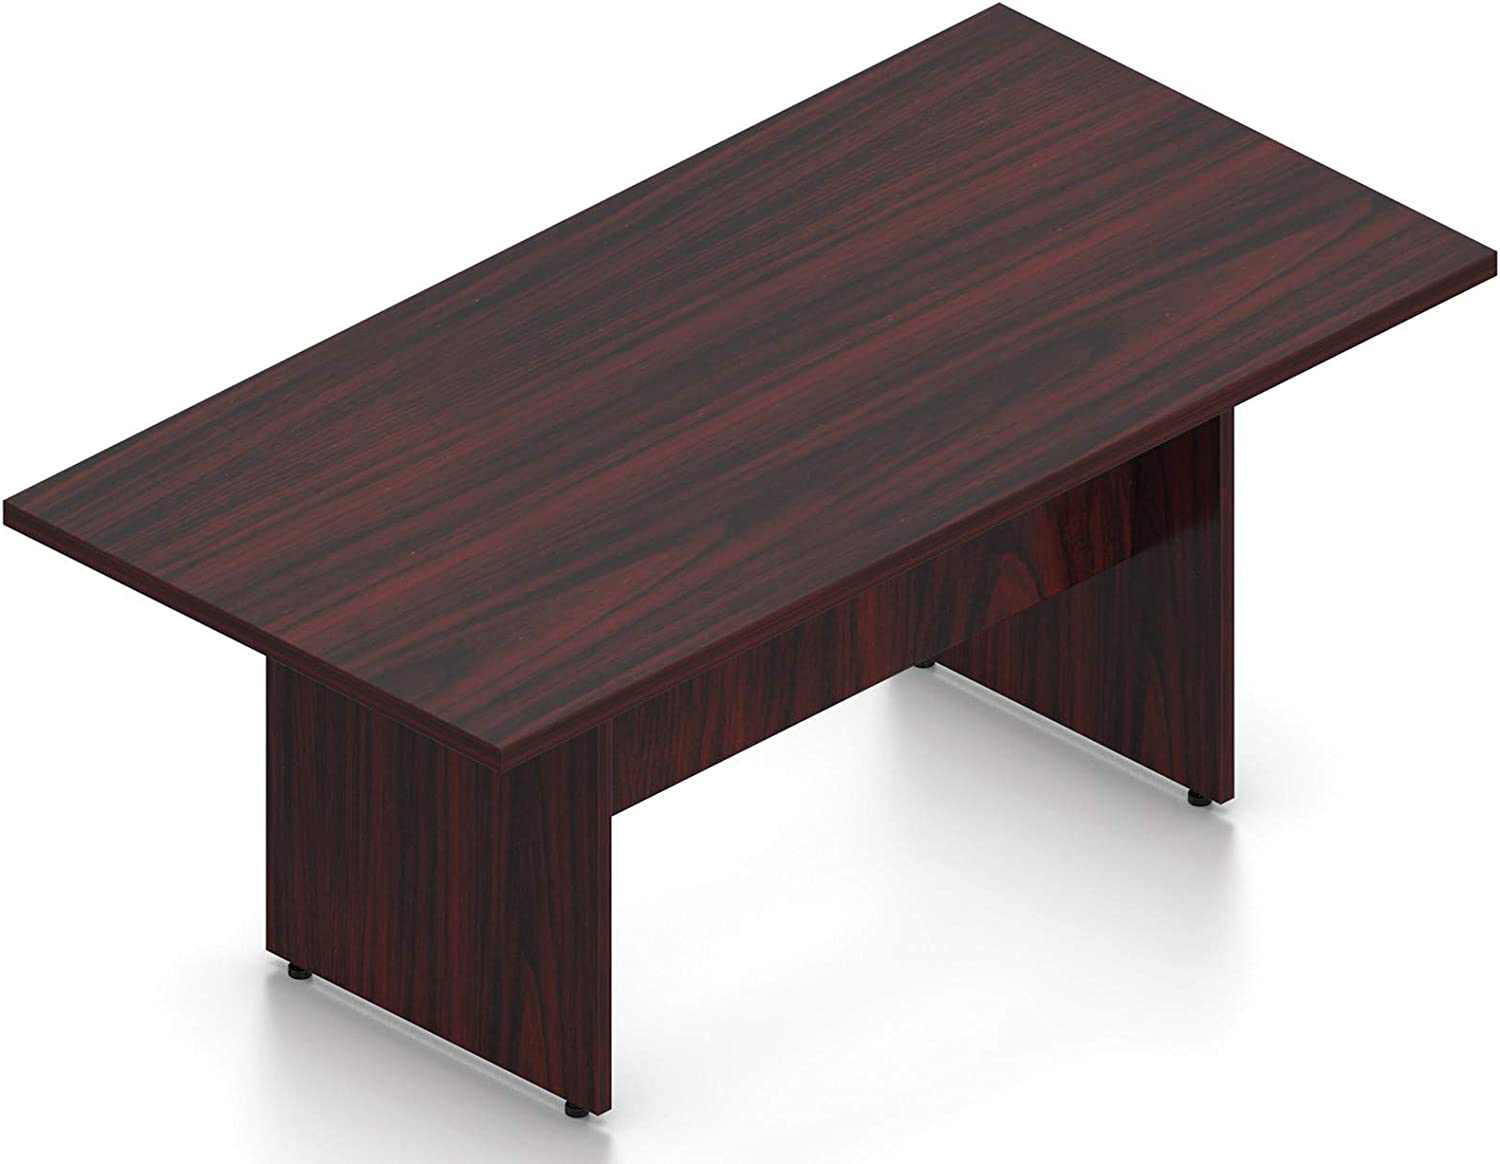 6 FT Contemporary Portland Mall Rectangular Ranking TOP3 Conference in Table American Room